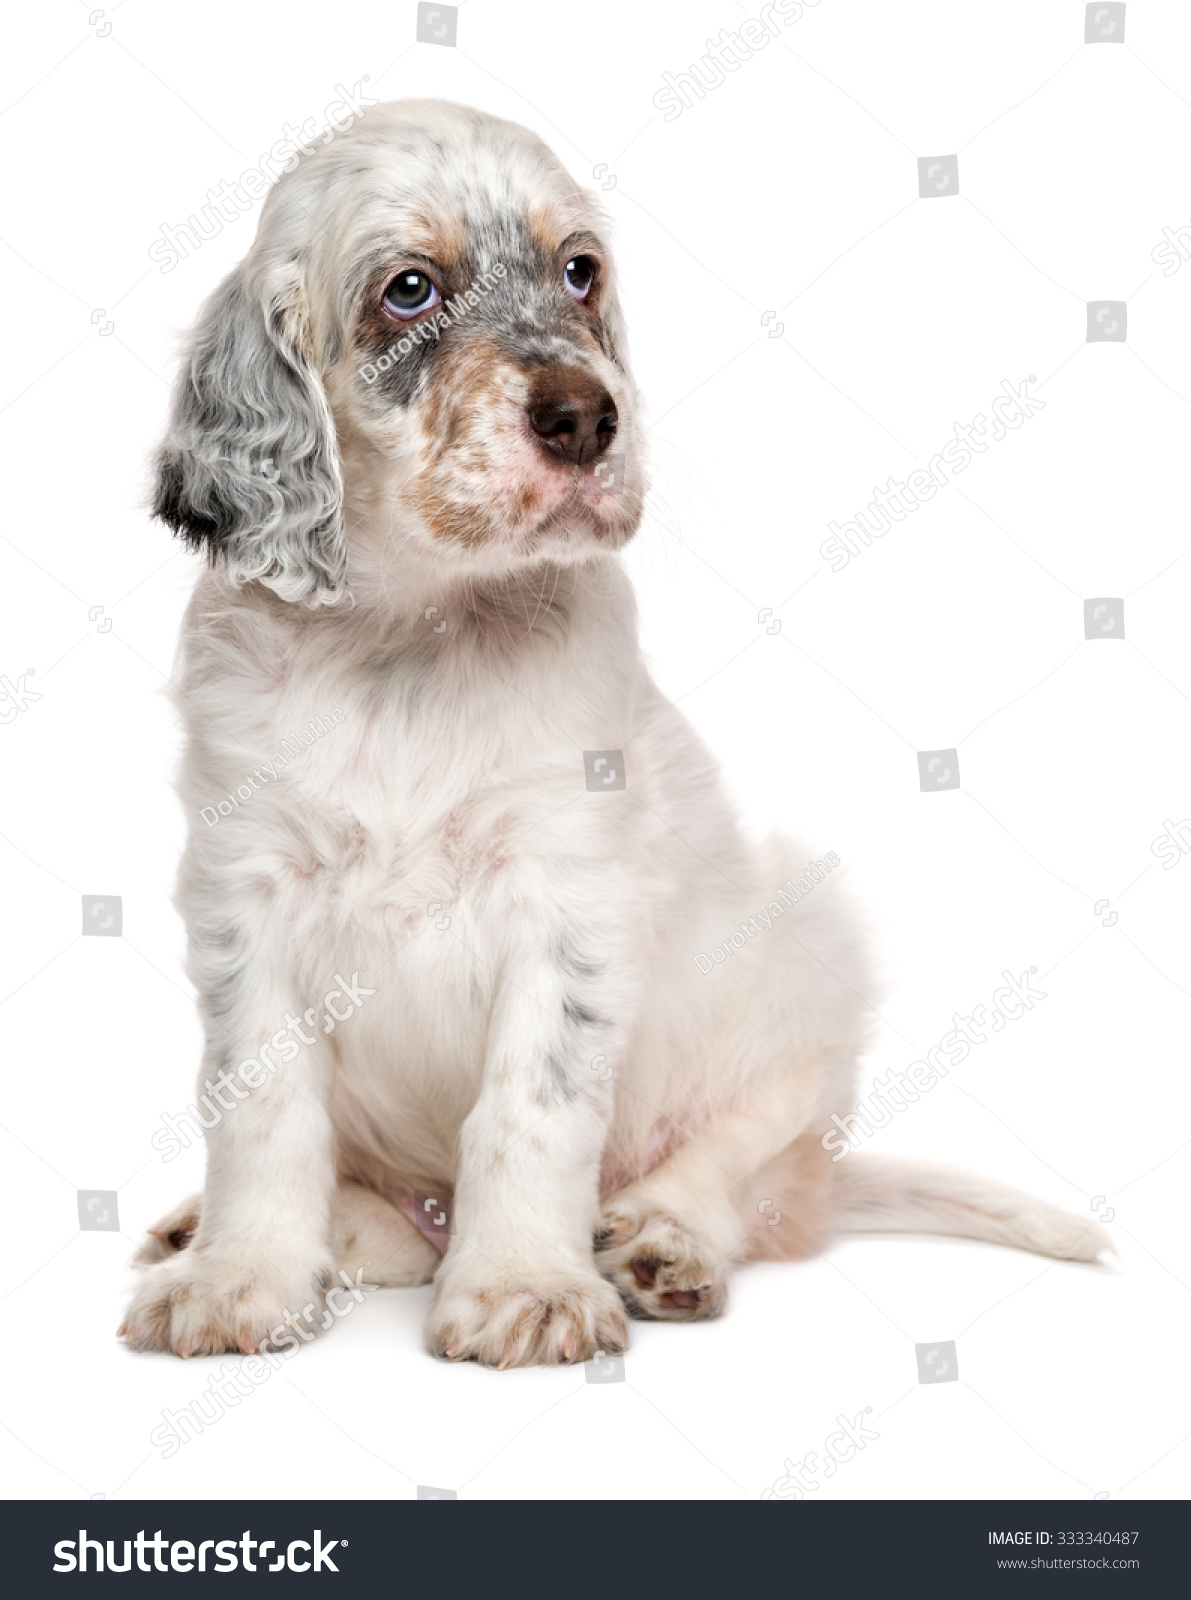 Cute Tricolor English Setter Puppy Dog Stock Photo (Edit Now